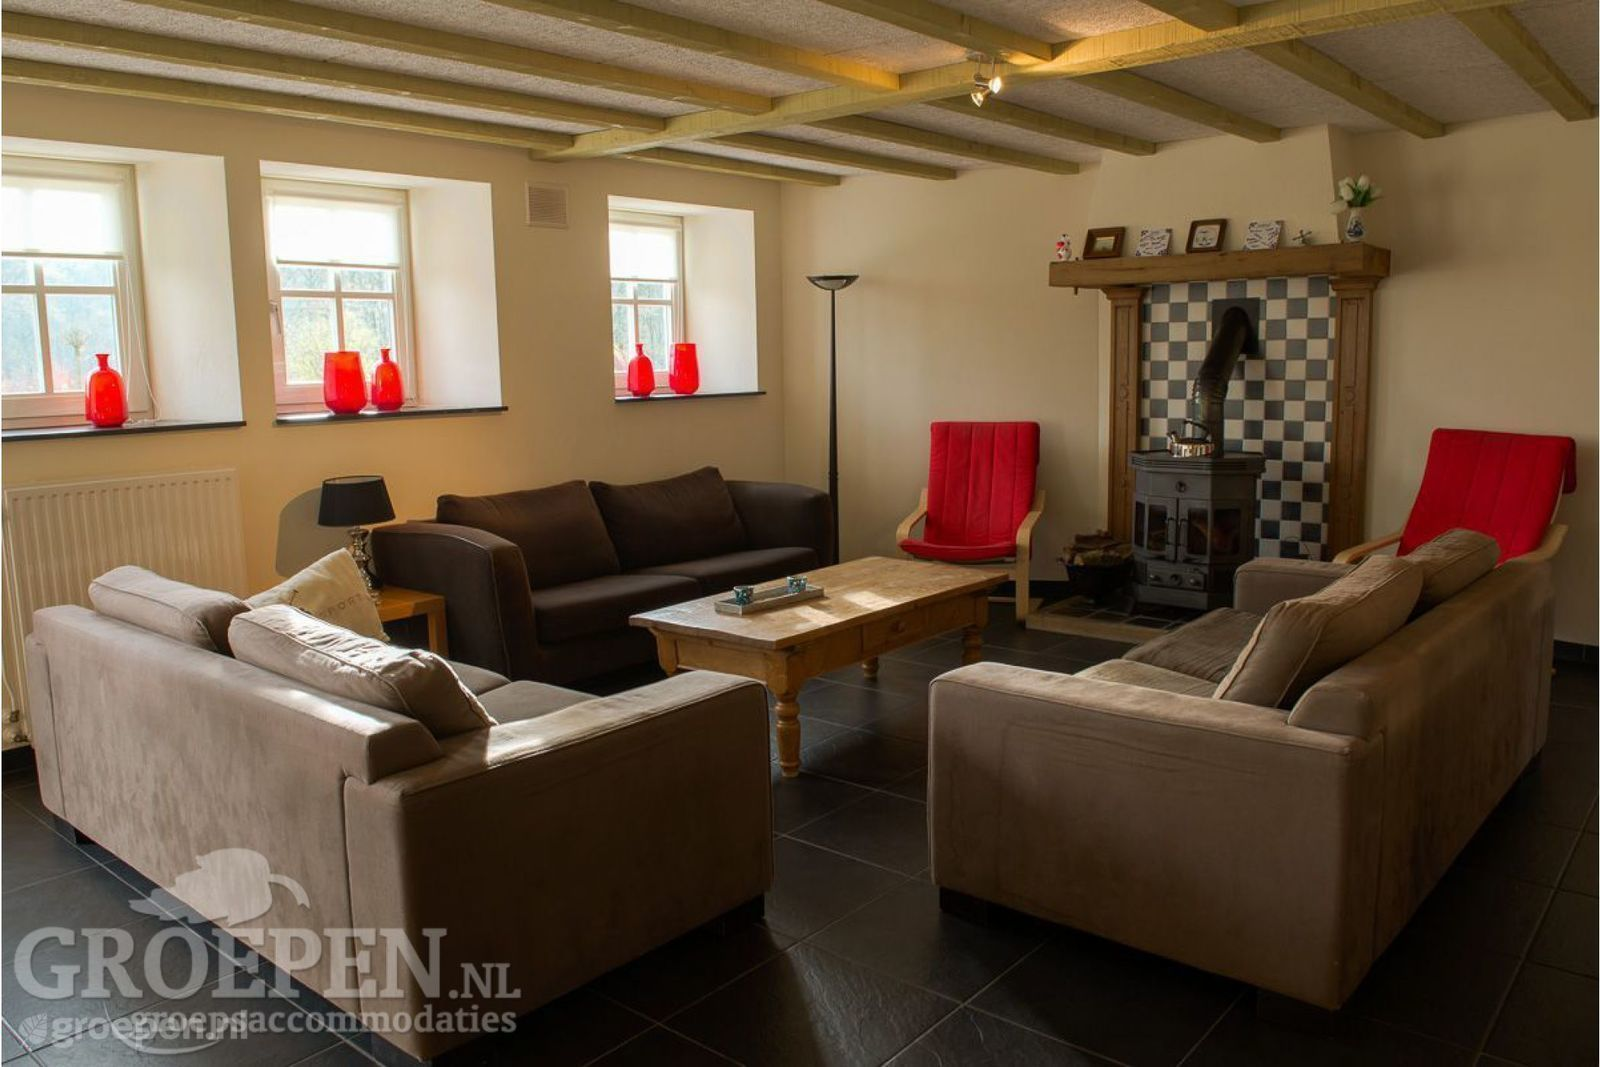 Group accommodation Geijsteren